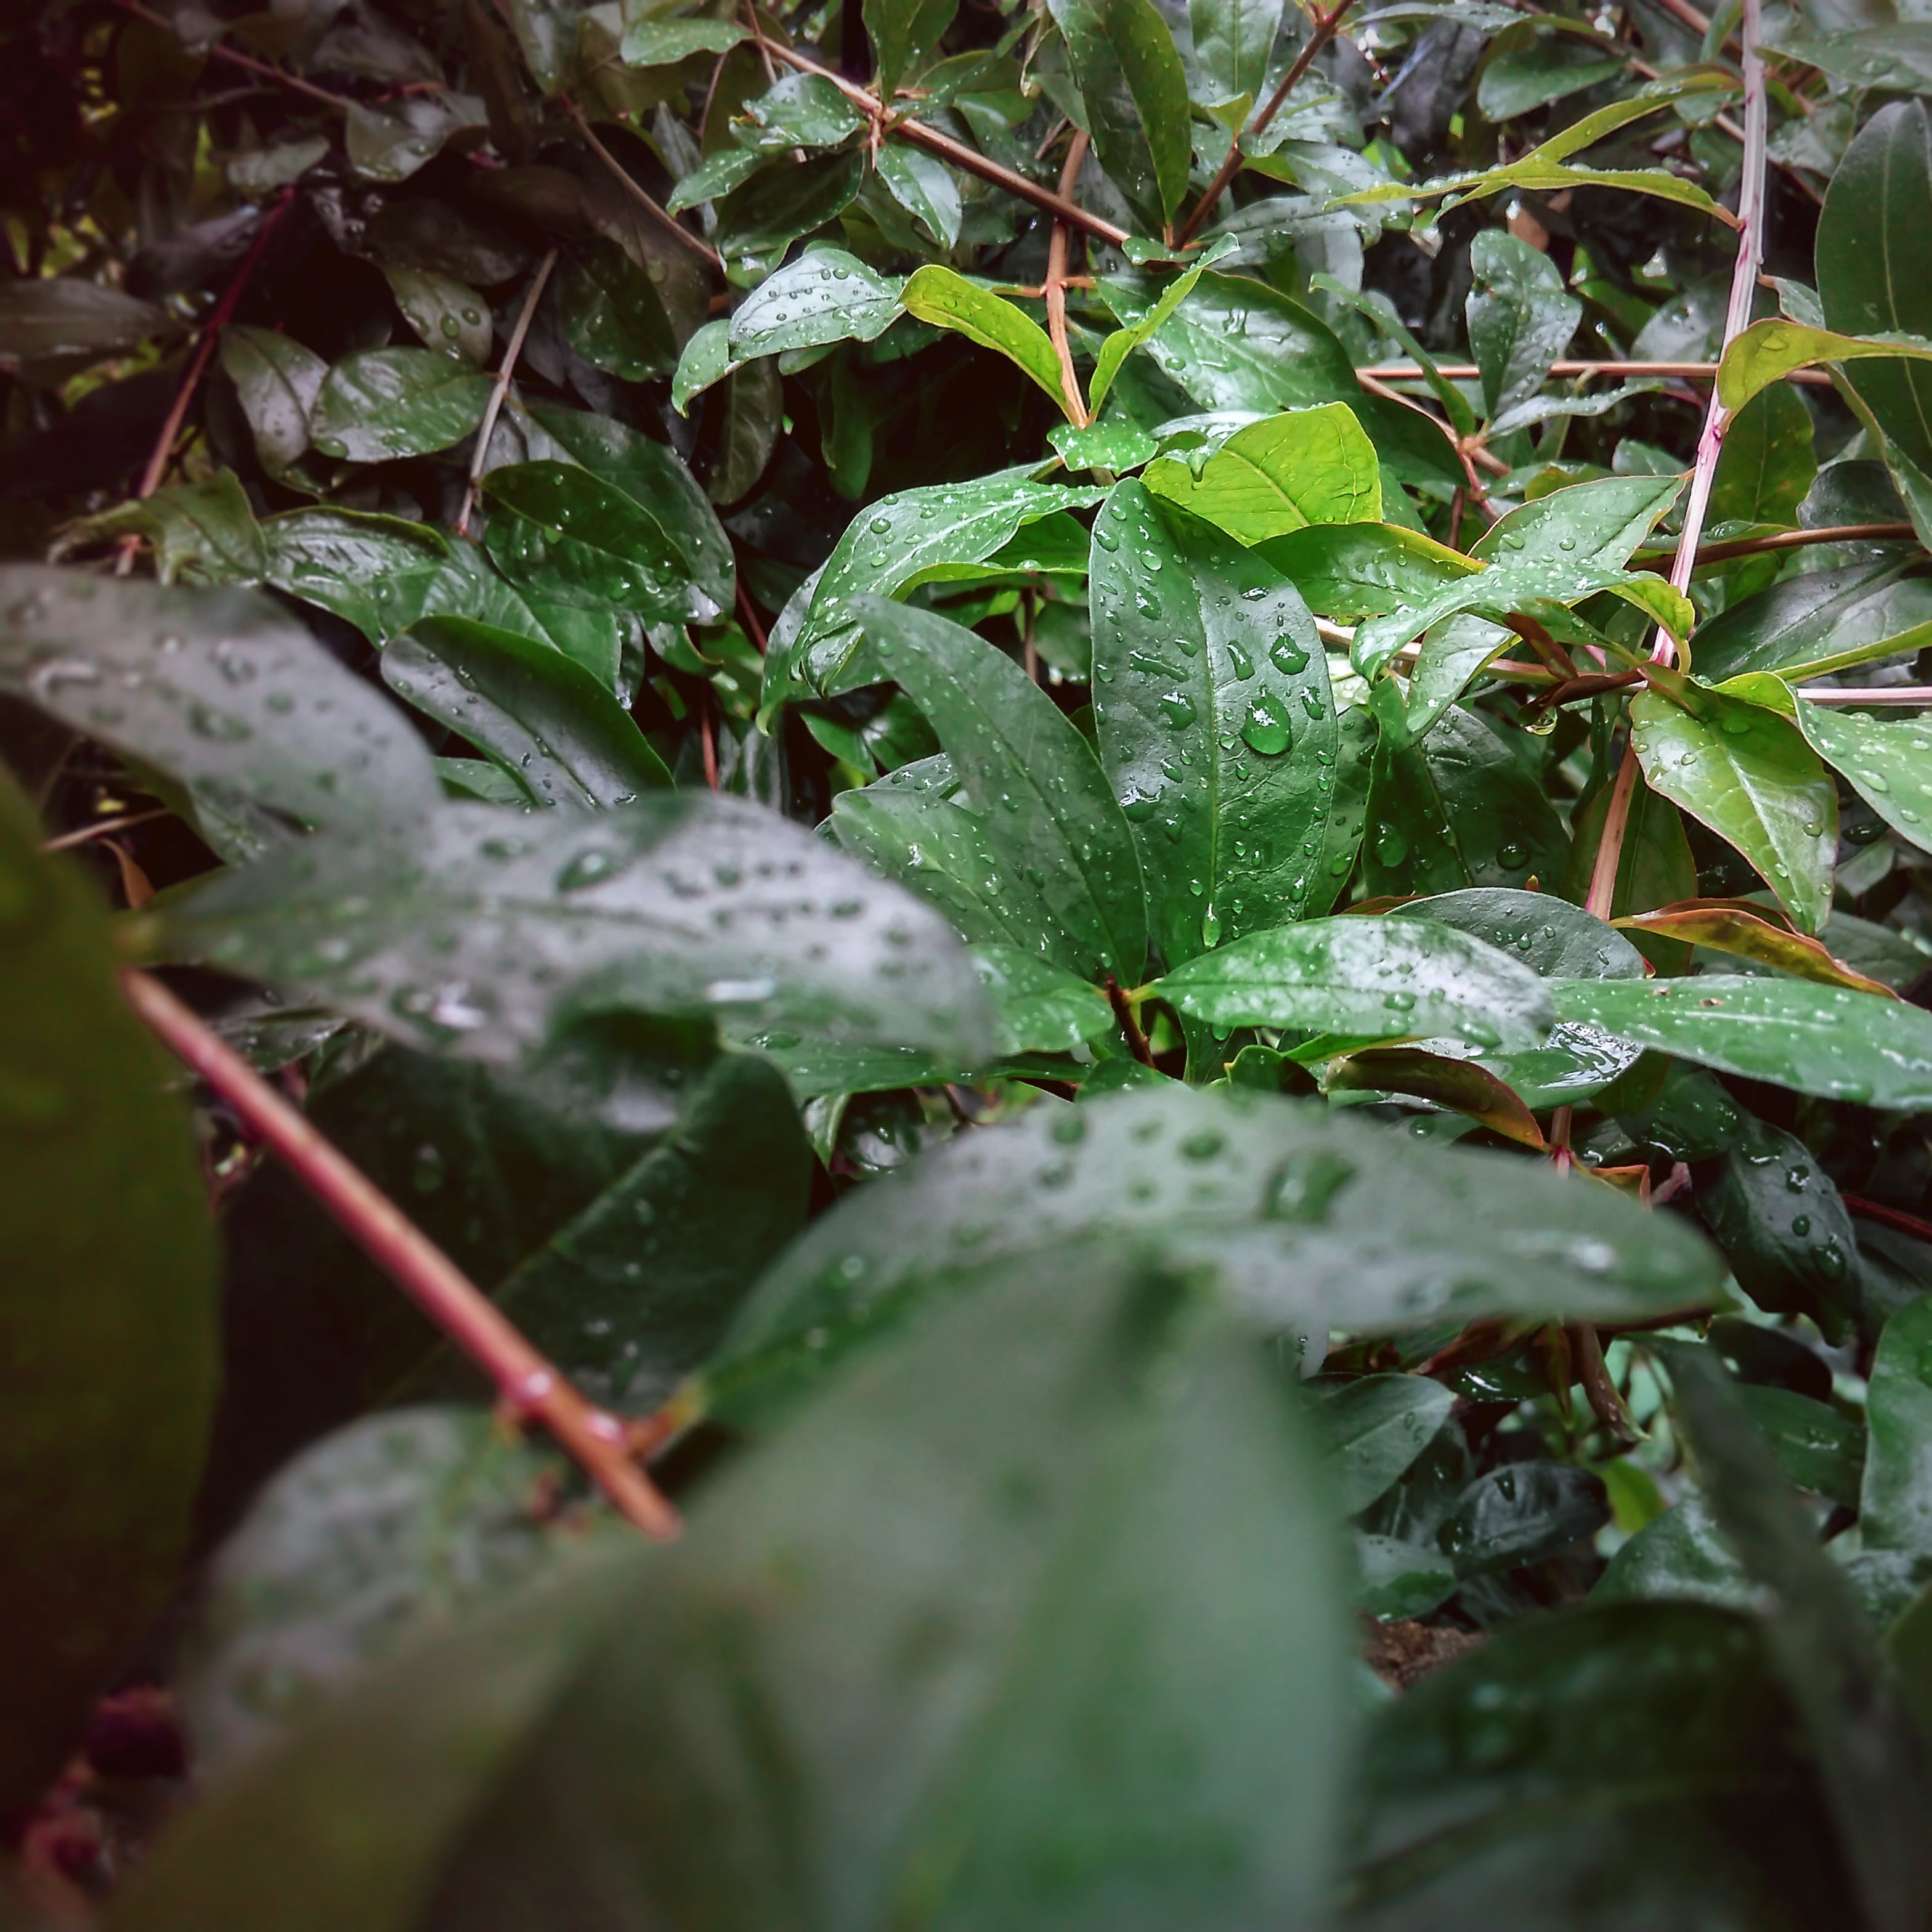 Free stock photo of after the rain, dark green, dark green plants, green leaves